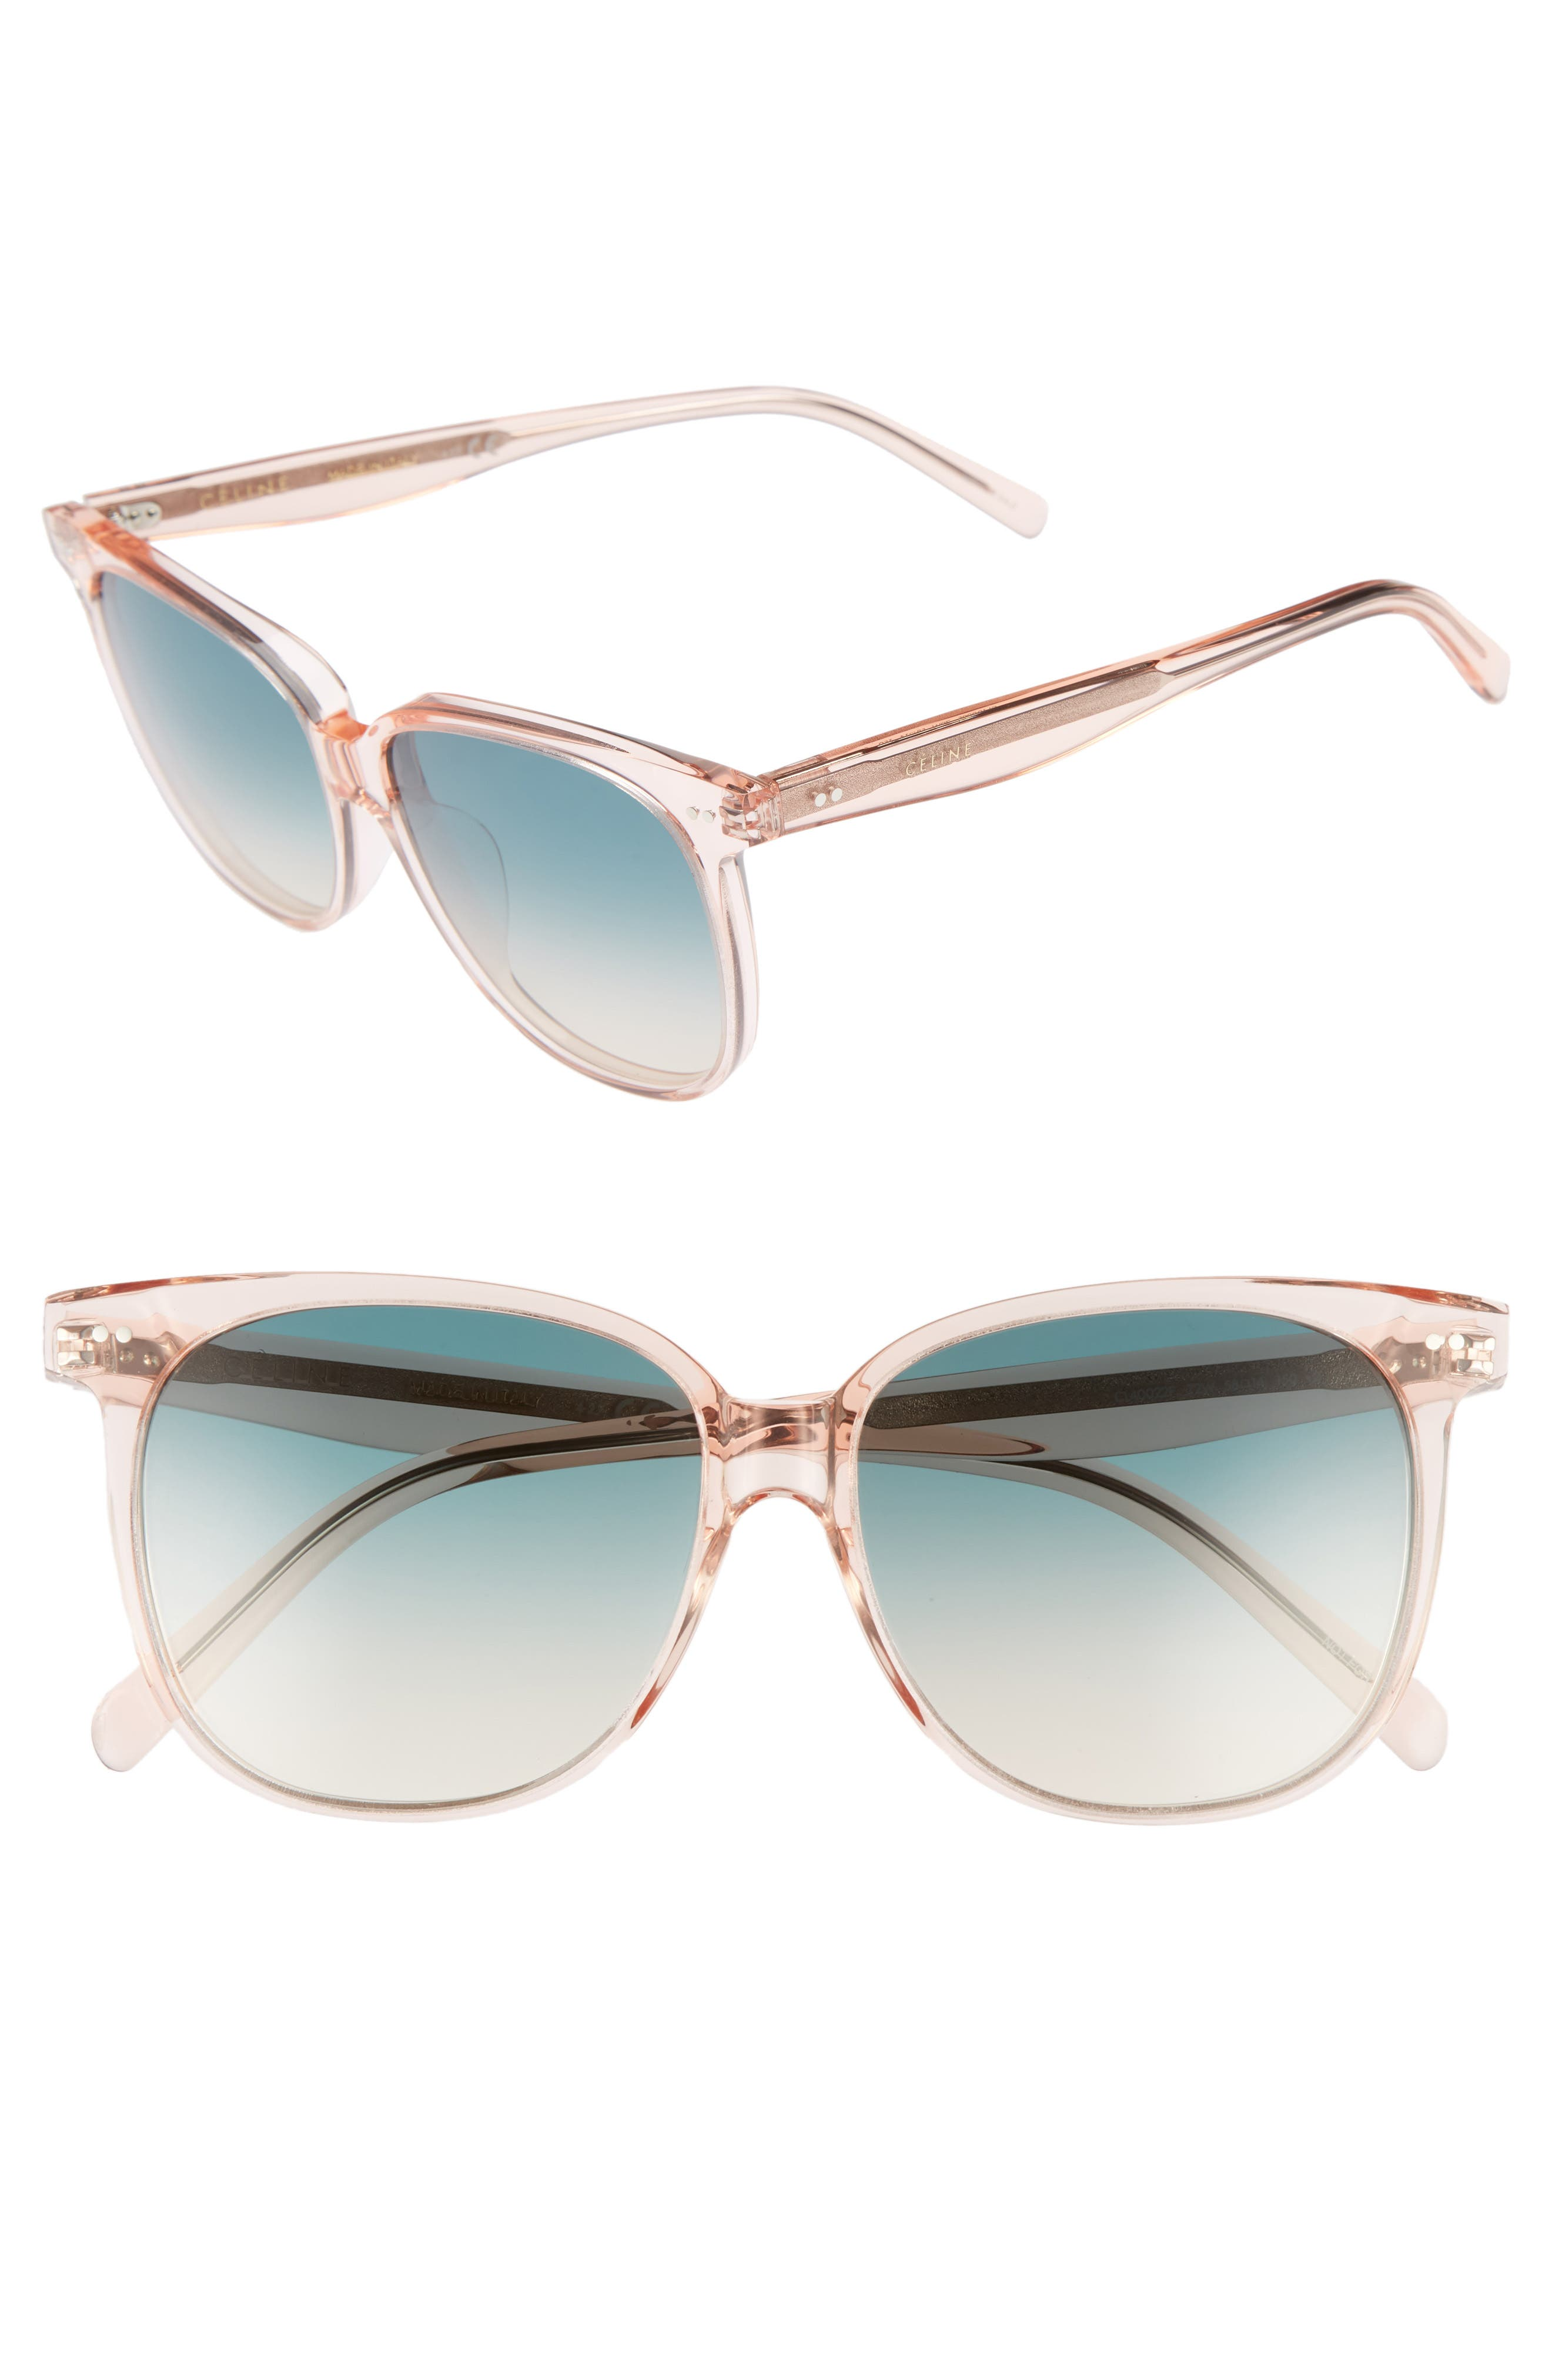 Special Fit 58mm Square Sunglasses,                         Main,                         color, Baby Pink/ Turquoise